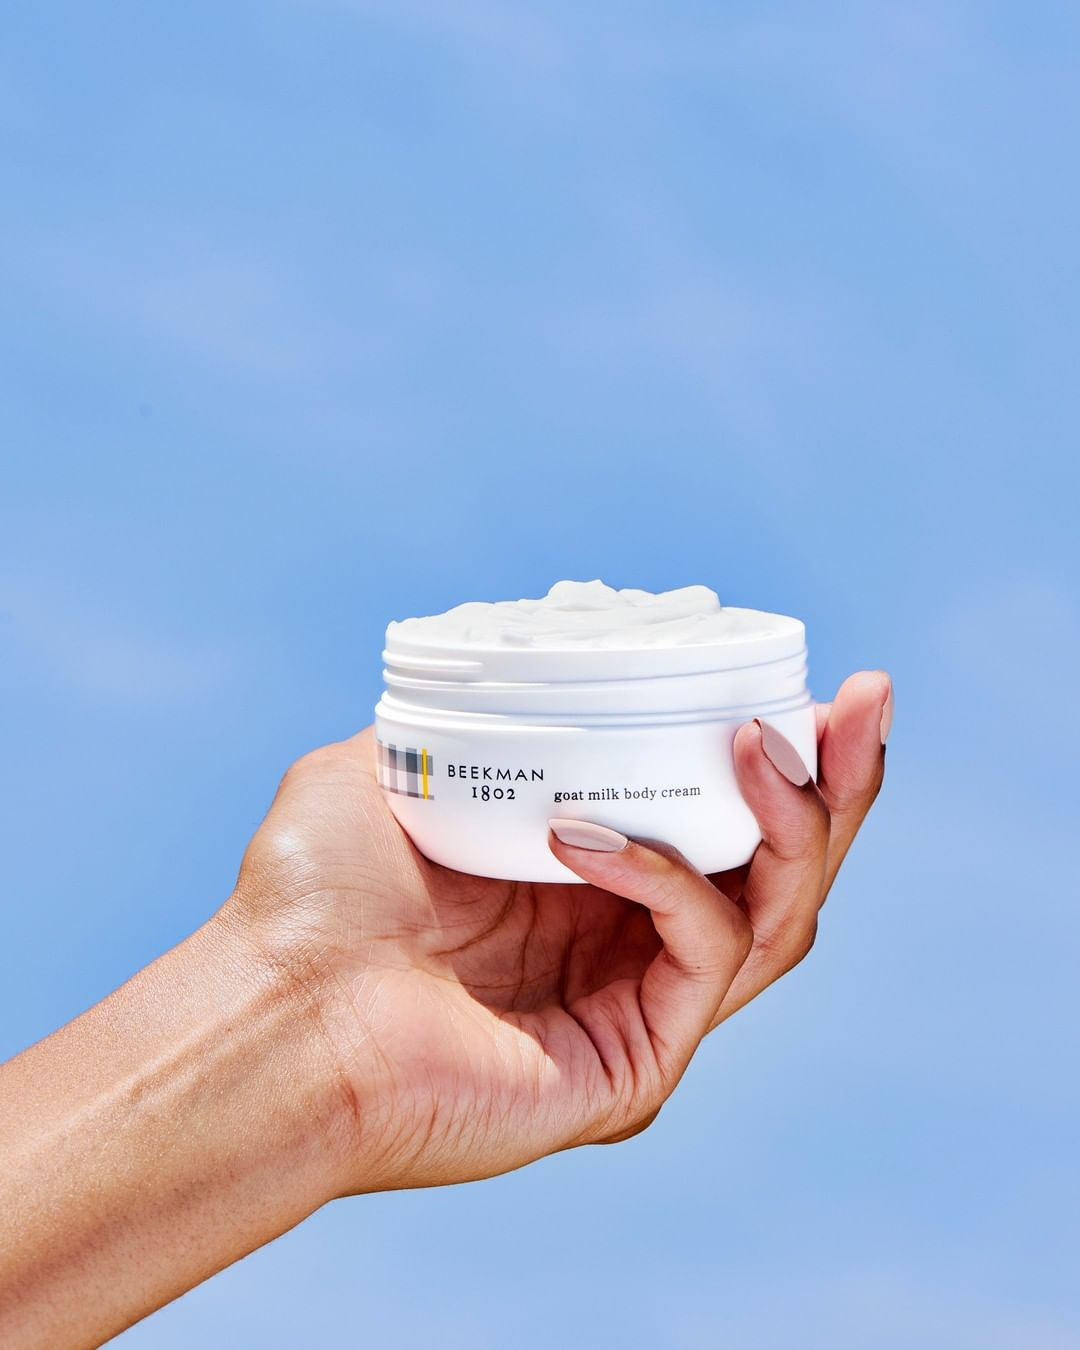 This Whipped Body Cream Has an Unexpected Ingredient That Makes Skin Incredibly Soft and Supple